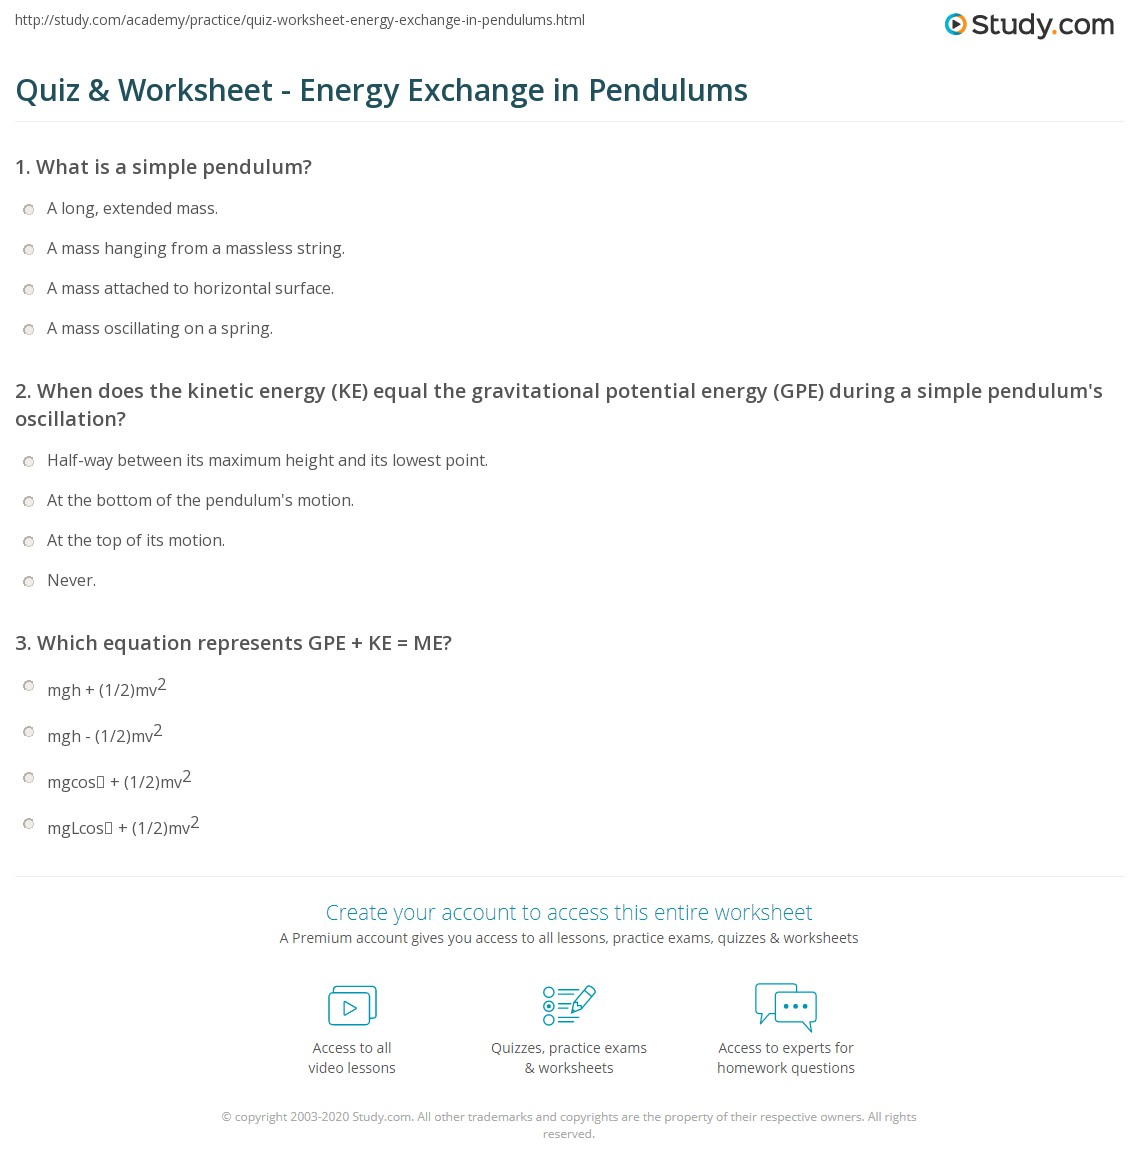 Quiz Worksheet Energy Exchange In Pendulums Study